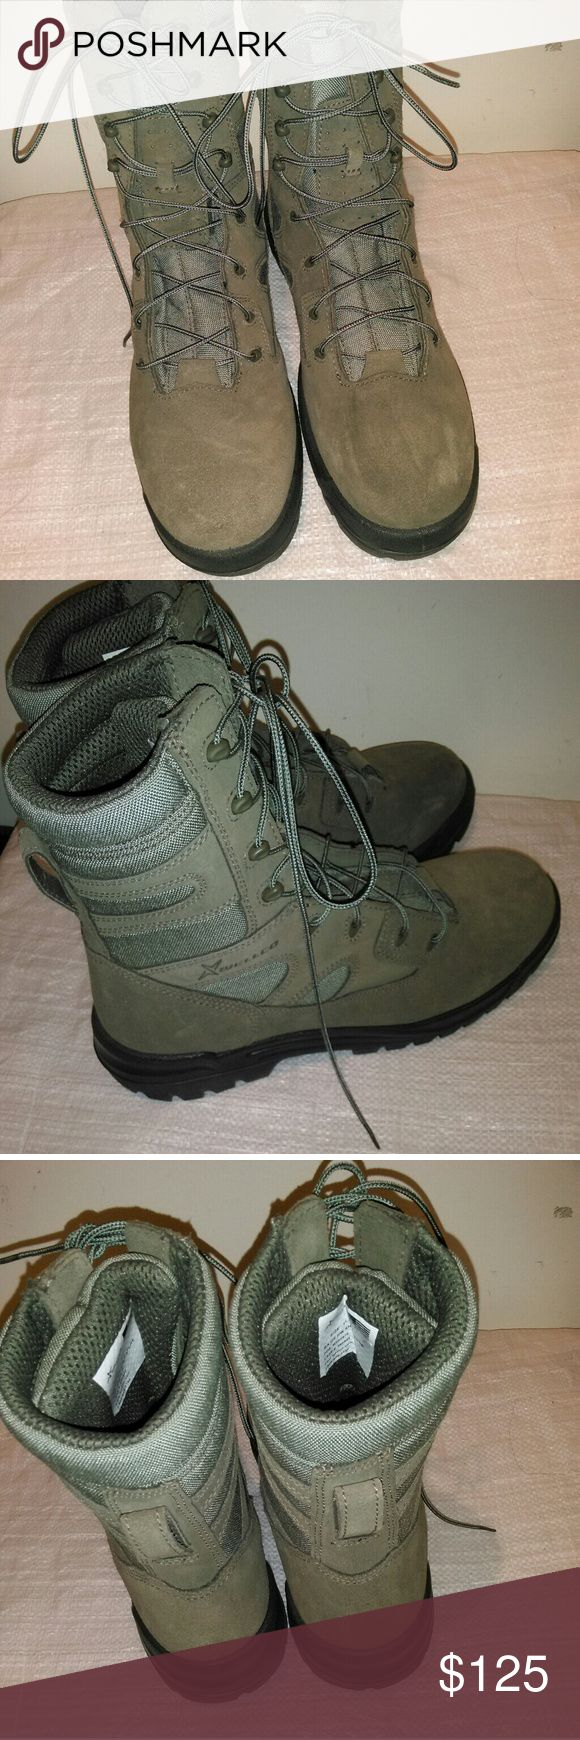 Men boots Military boots wellco Shoes Boots